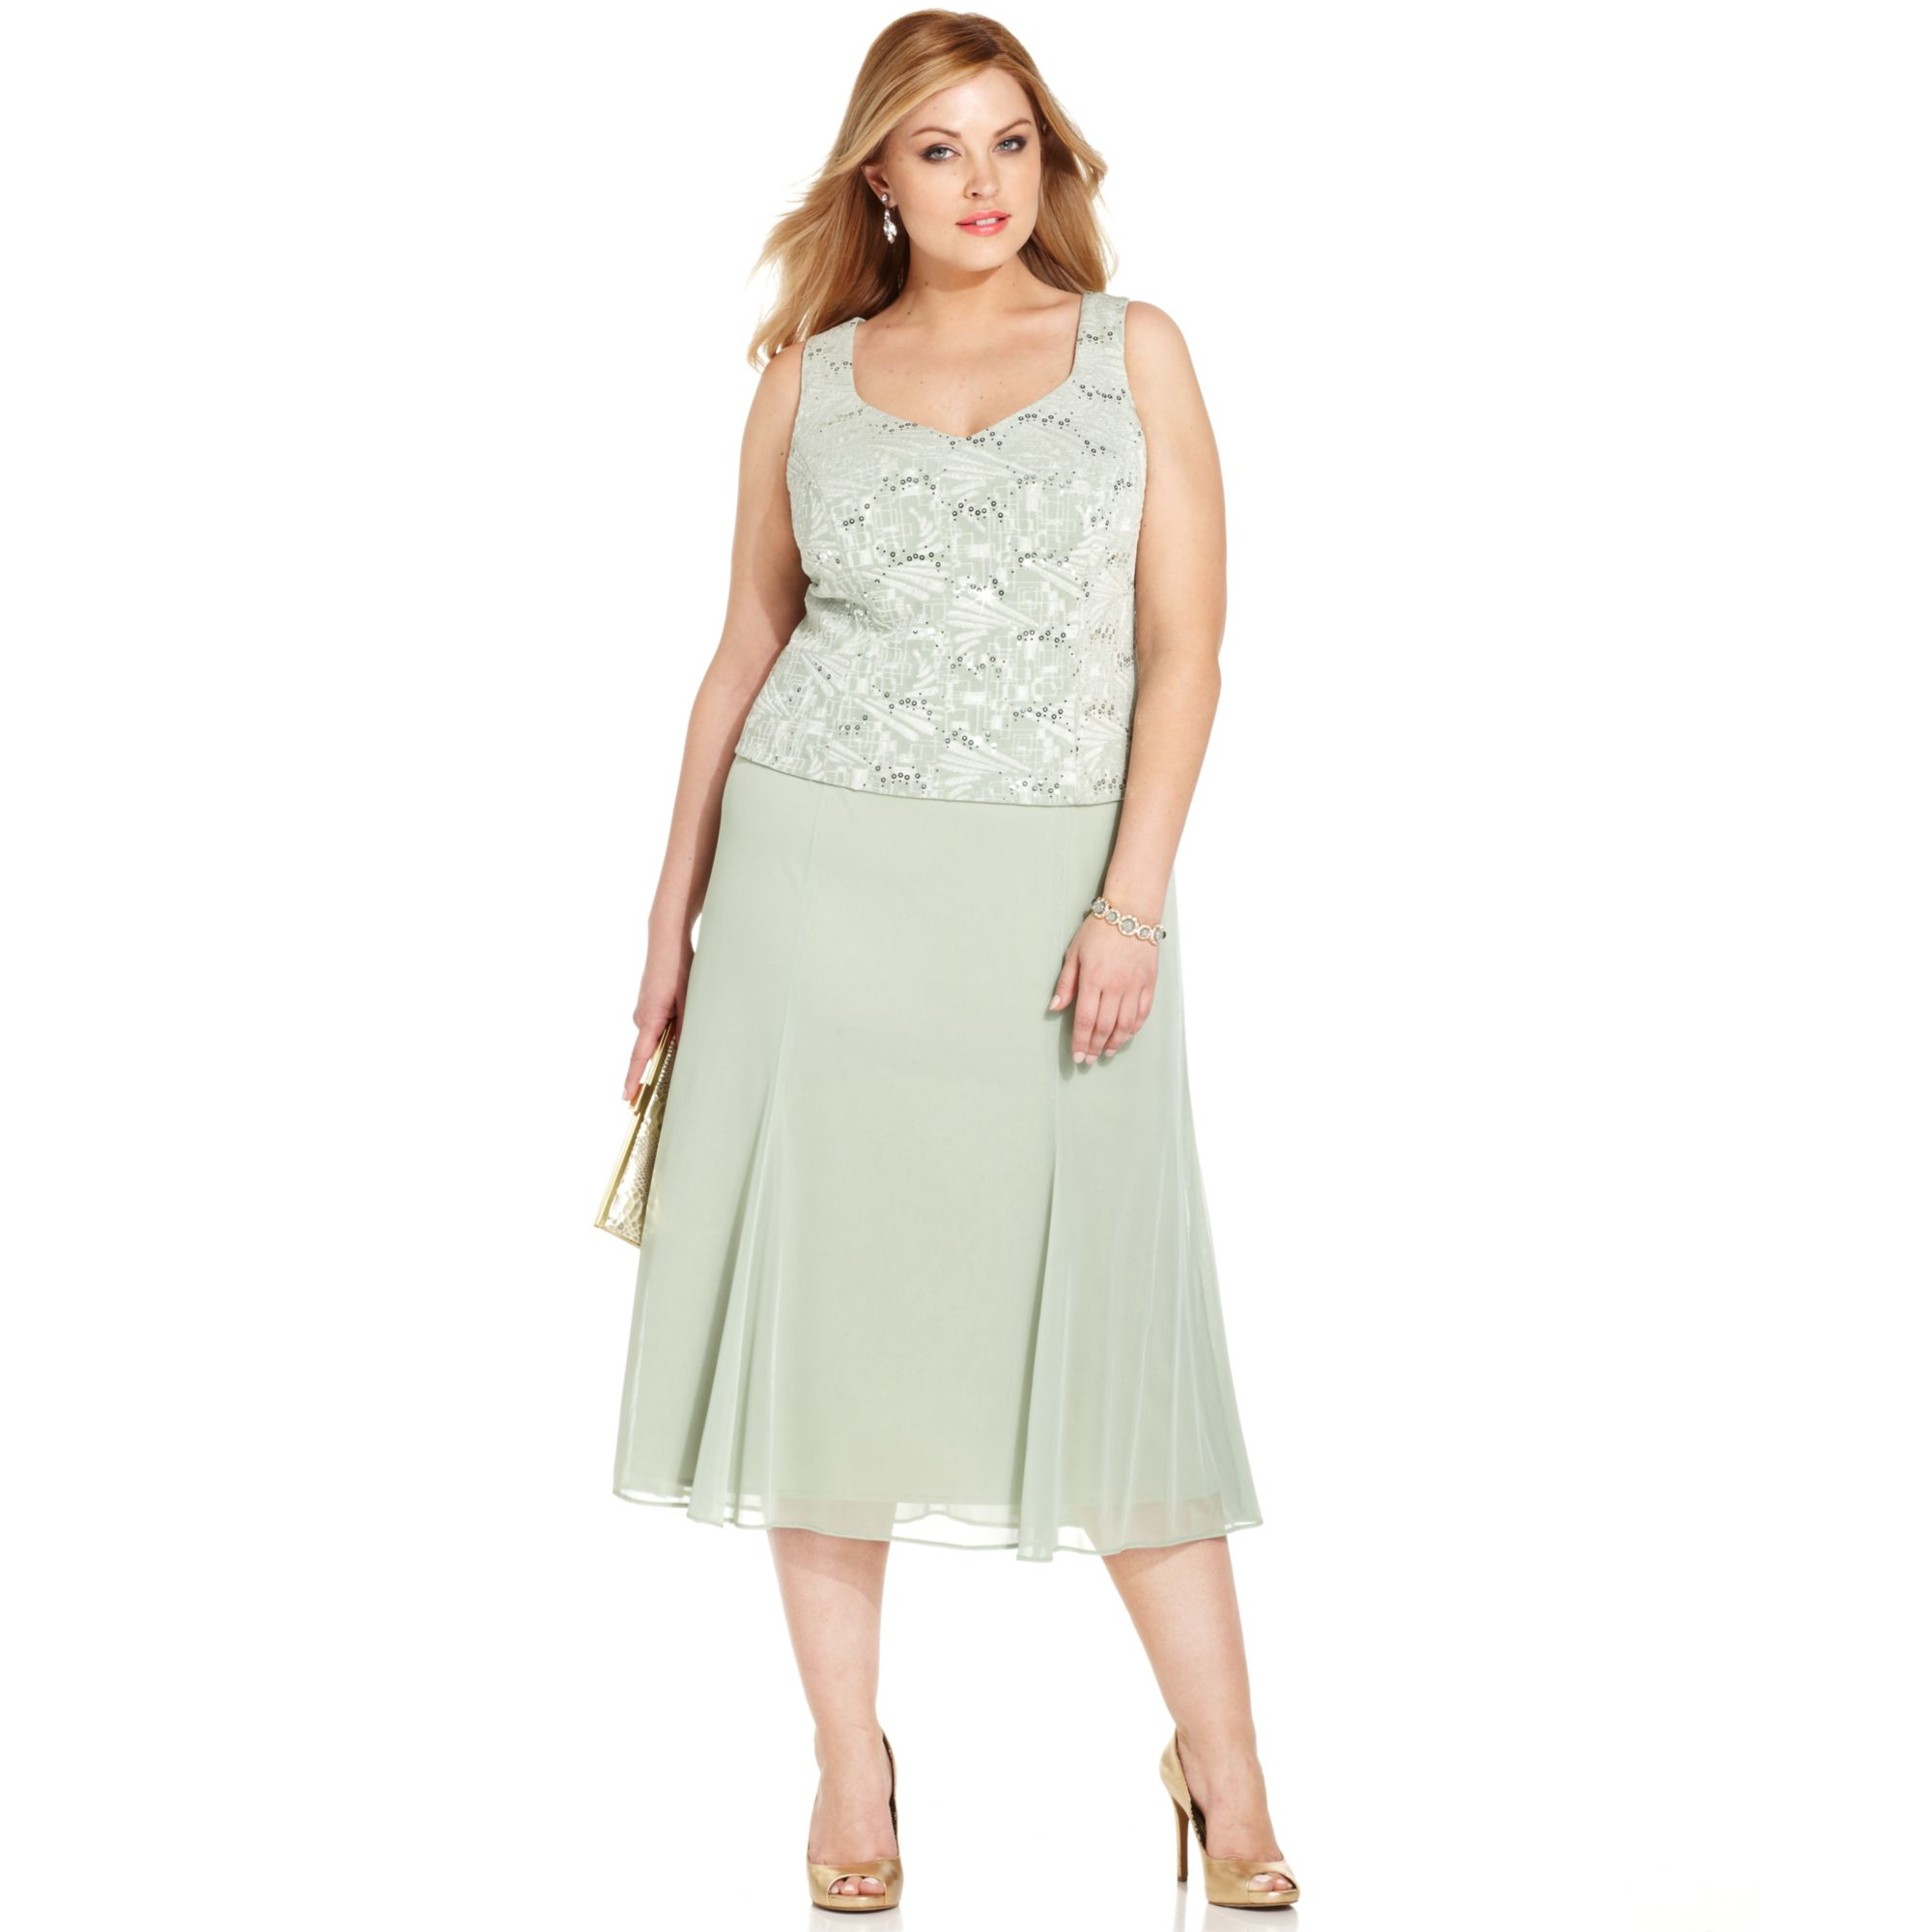 c3cf6bc4496 Alex Evenings Plus Size Sequin Jacquard Dress and Jacket in Green - Lyst